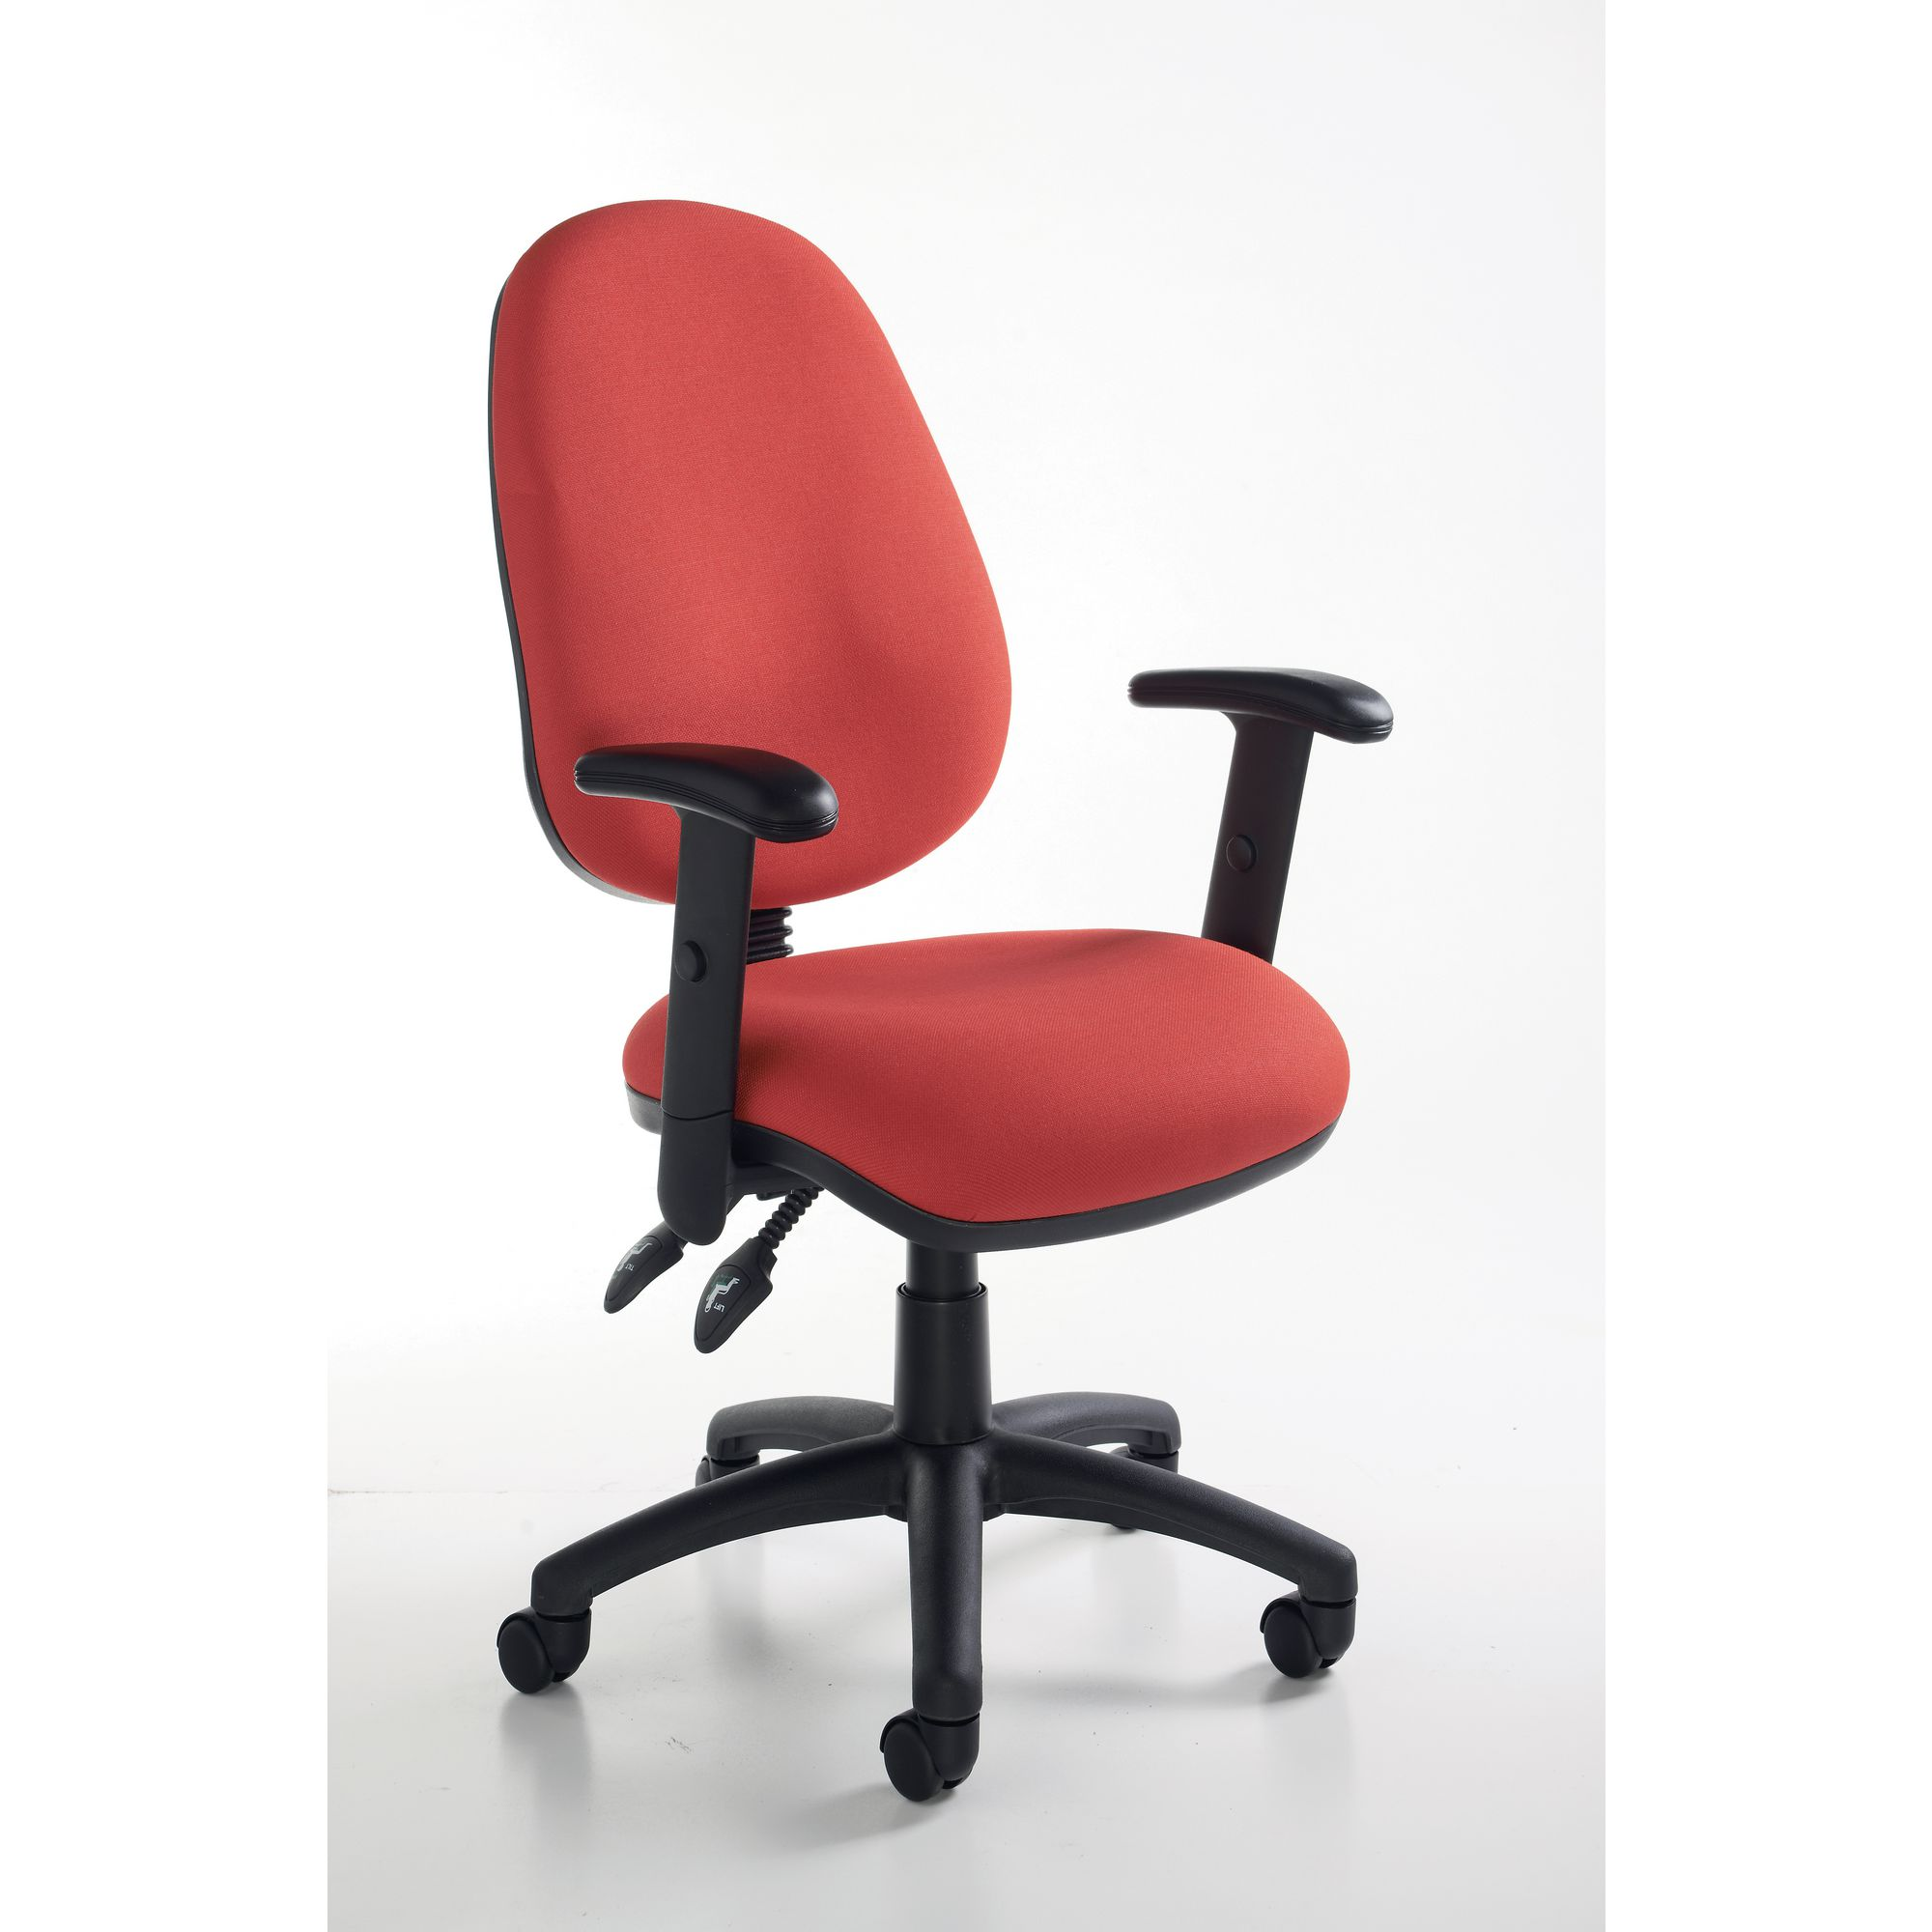 How To Adjust Office Chair Vantage 3 Lever Adjust Arms Chair Red